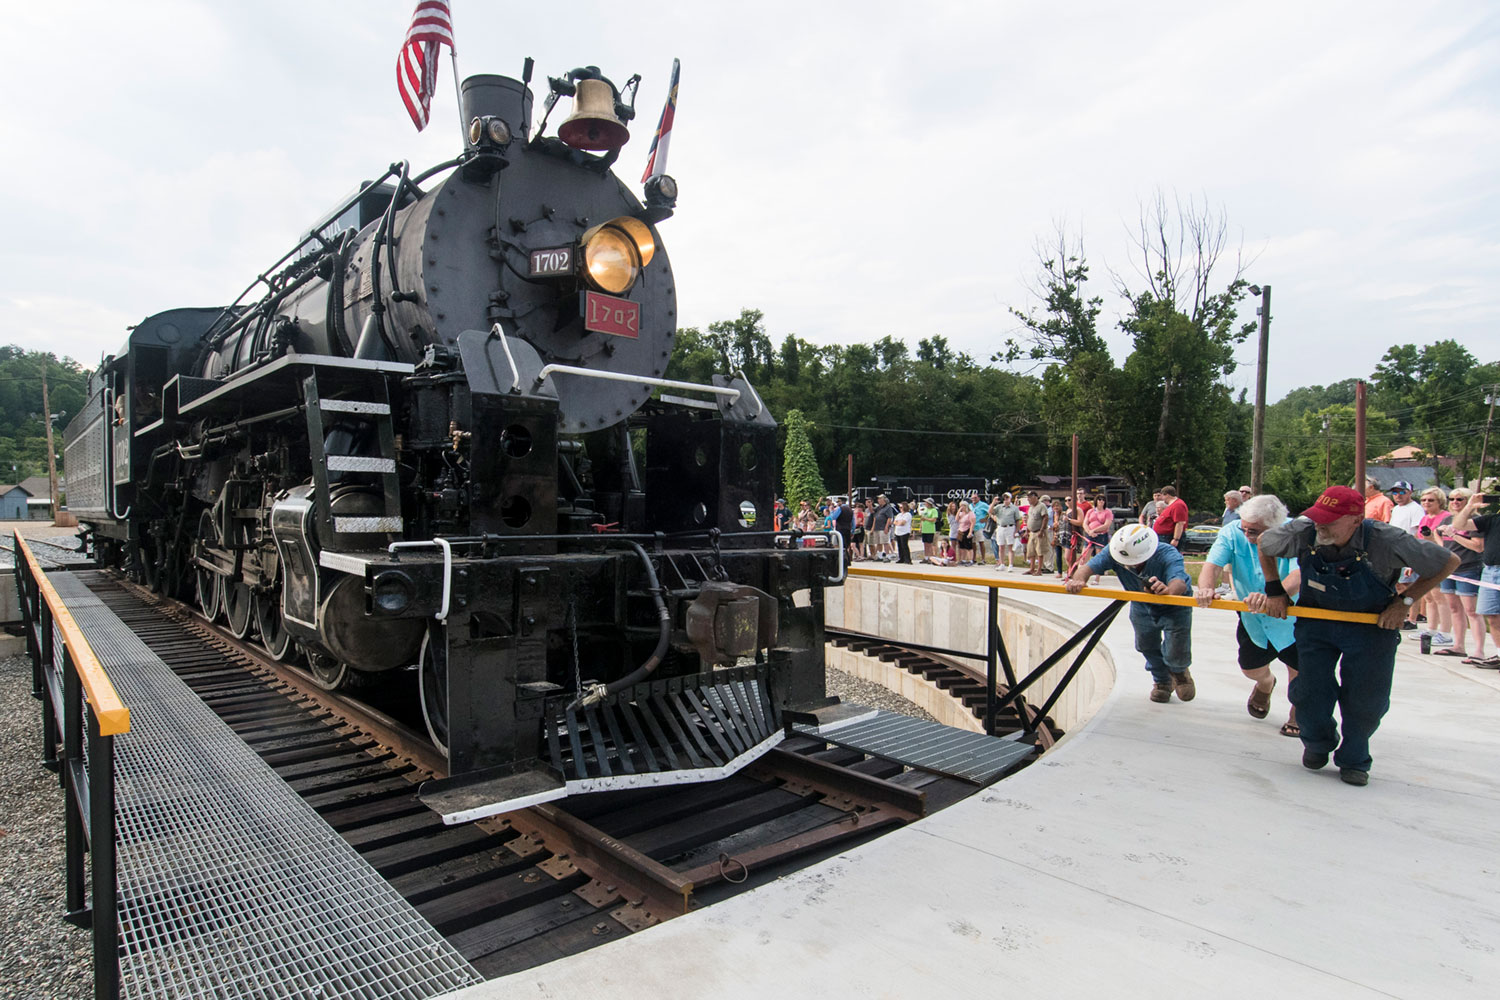 In Bryson City, Three People Pushed a 177-ton Locomotive